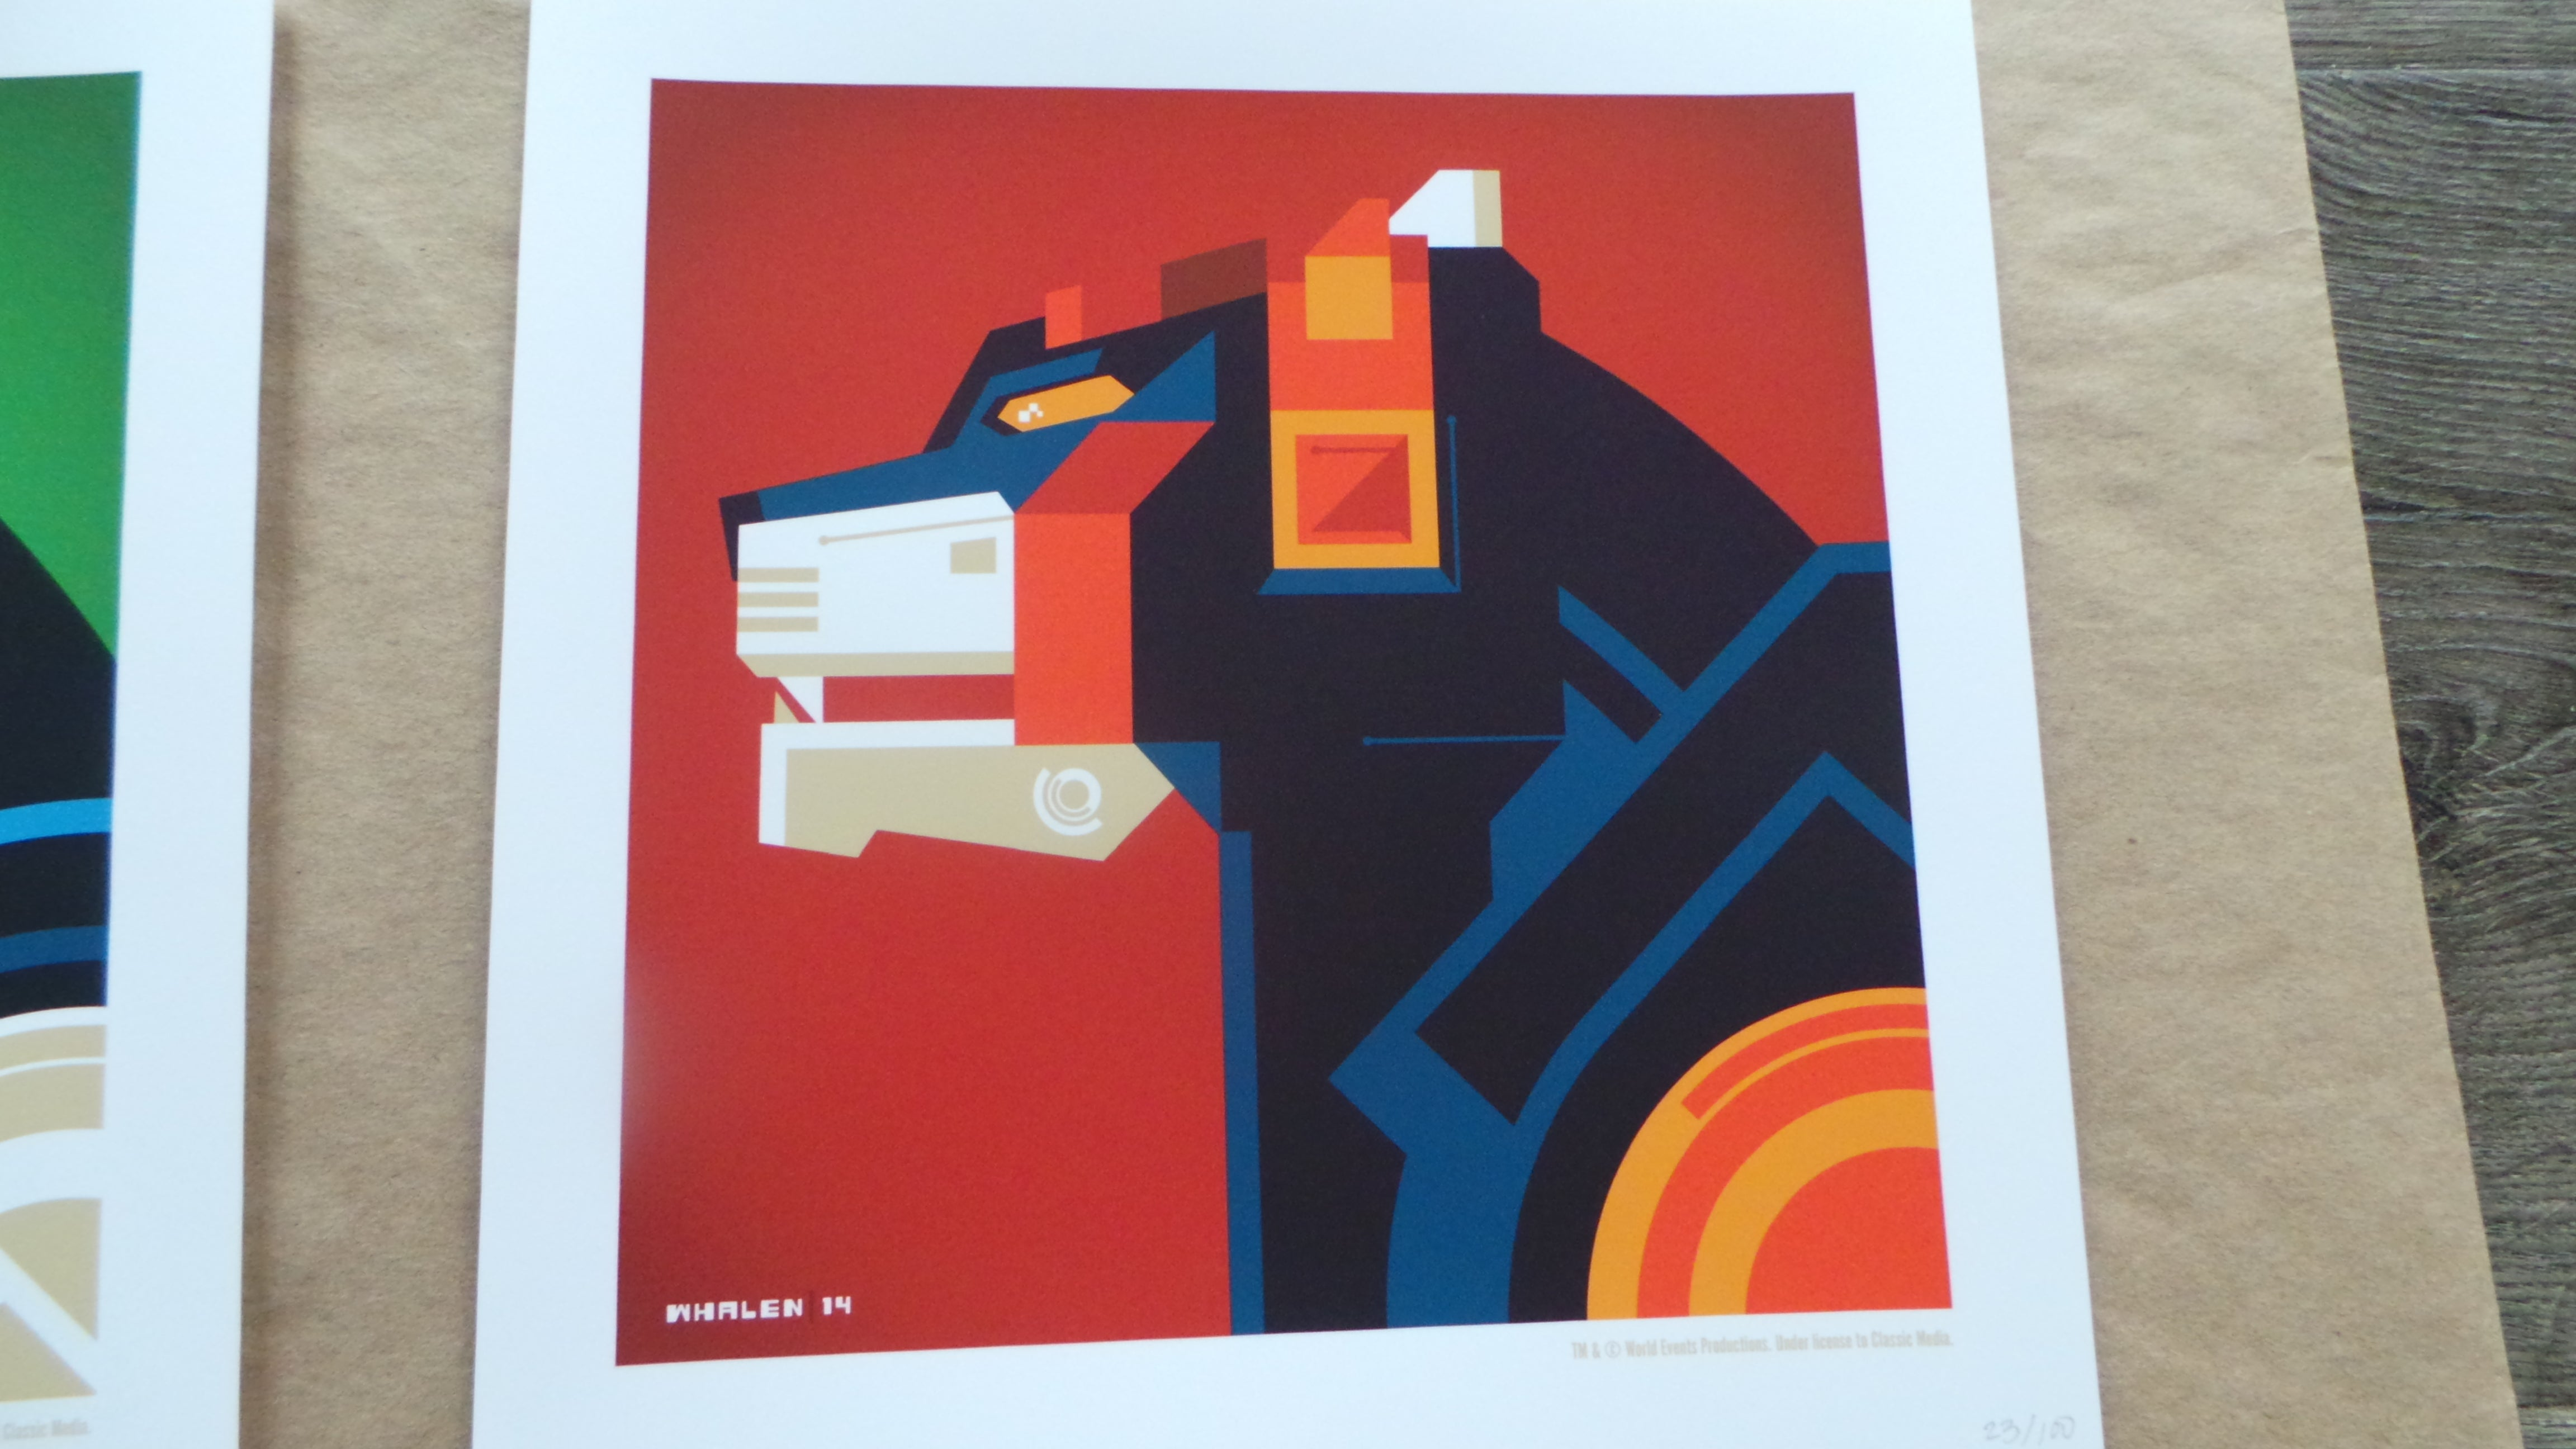 Full Set of 5 Voltron Lions and Holofoil Screenprint Poster Edition by Tom Whalen 2015 xx/100